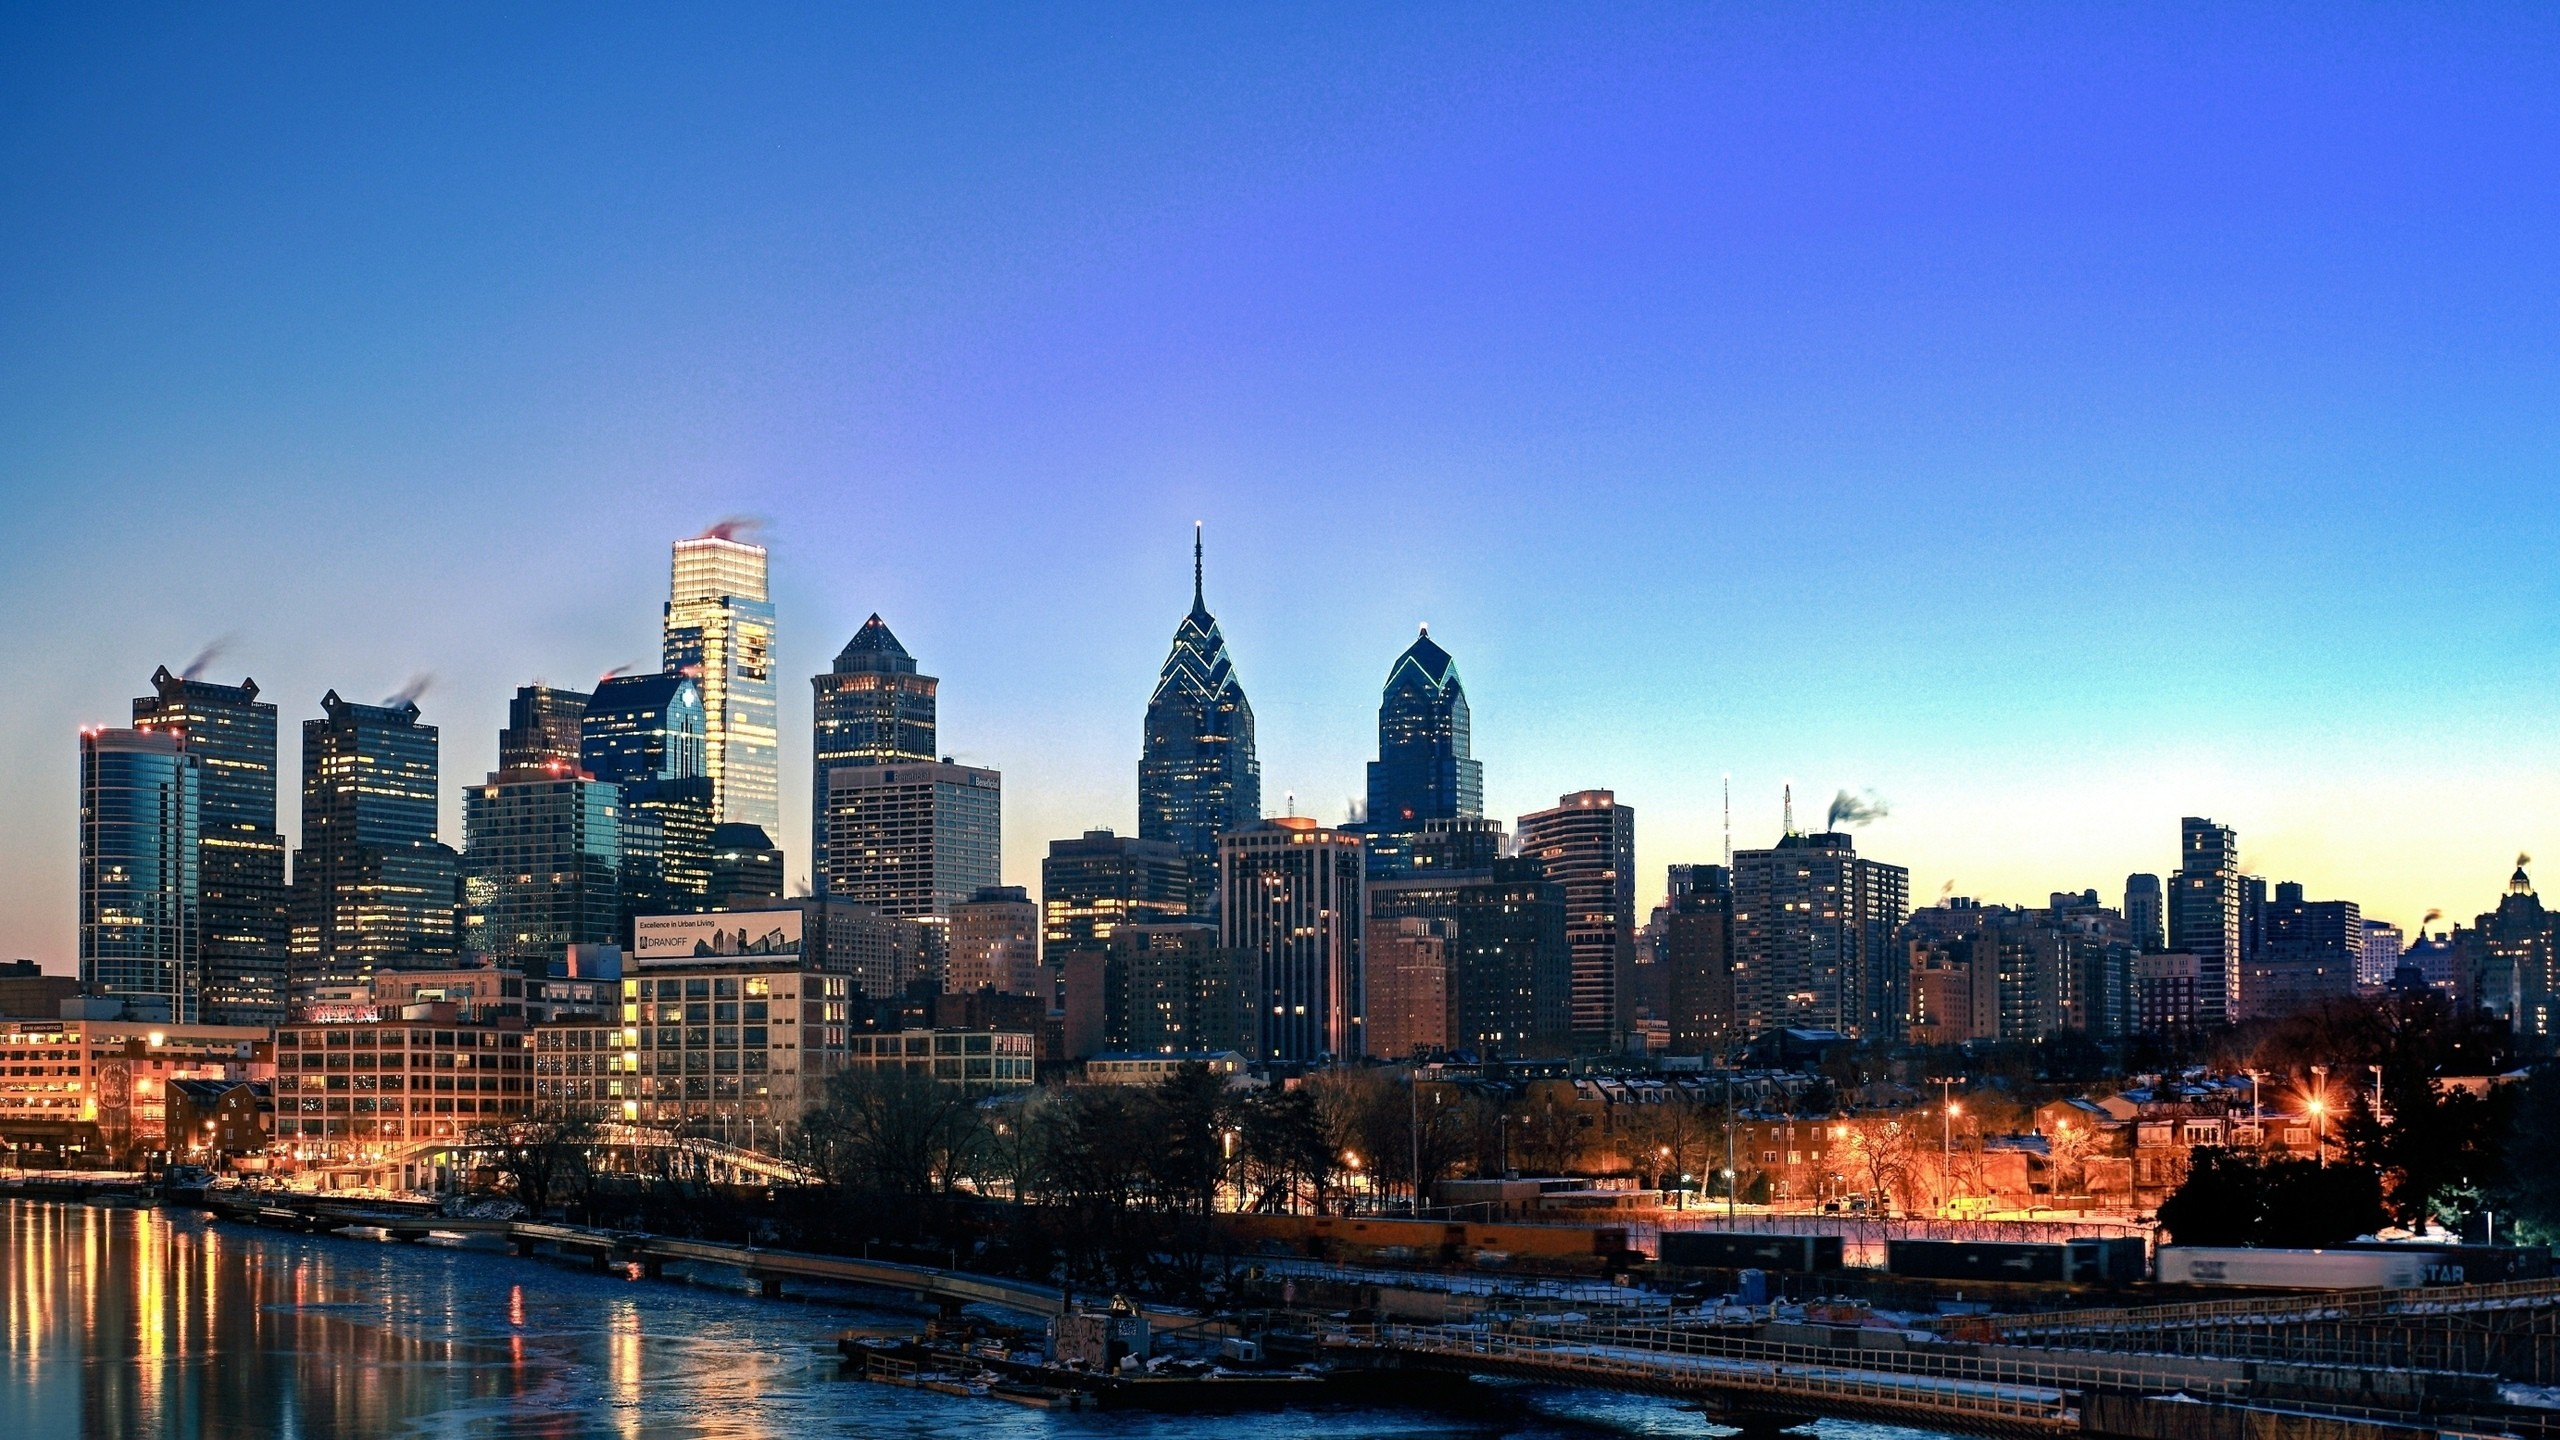 philadelphia skyline wallpaper ·①